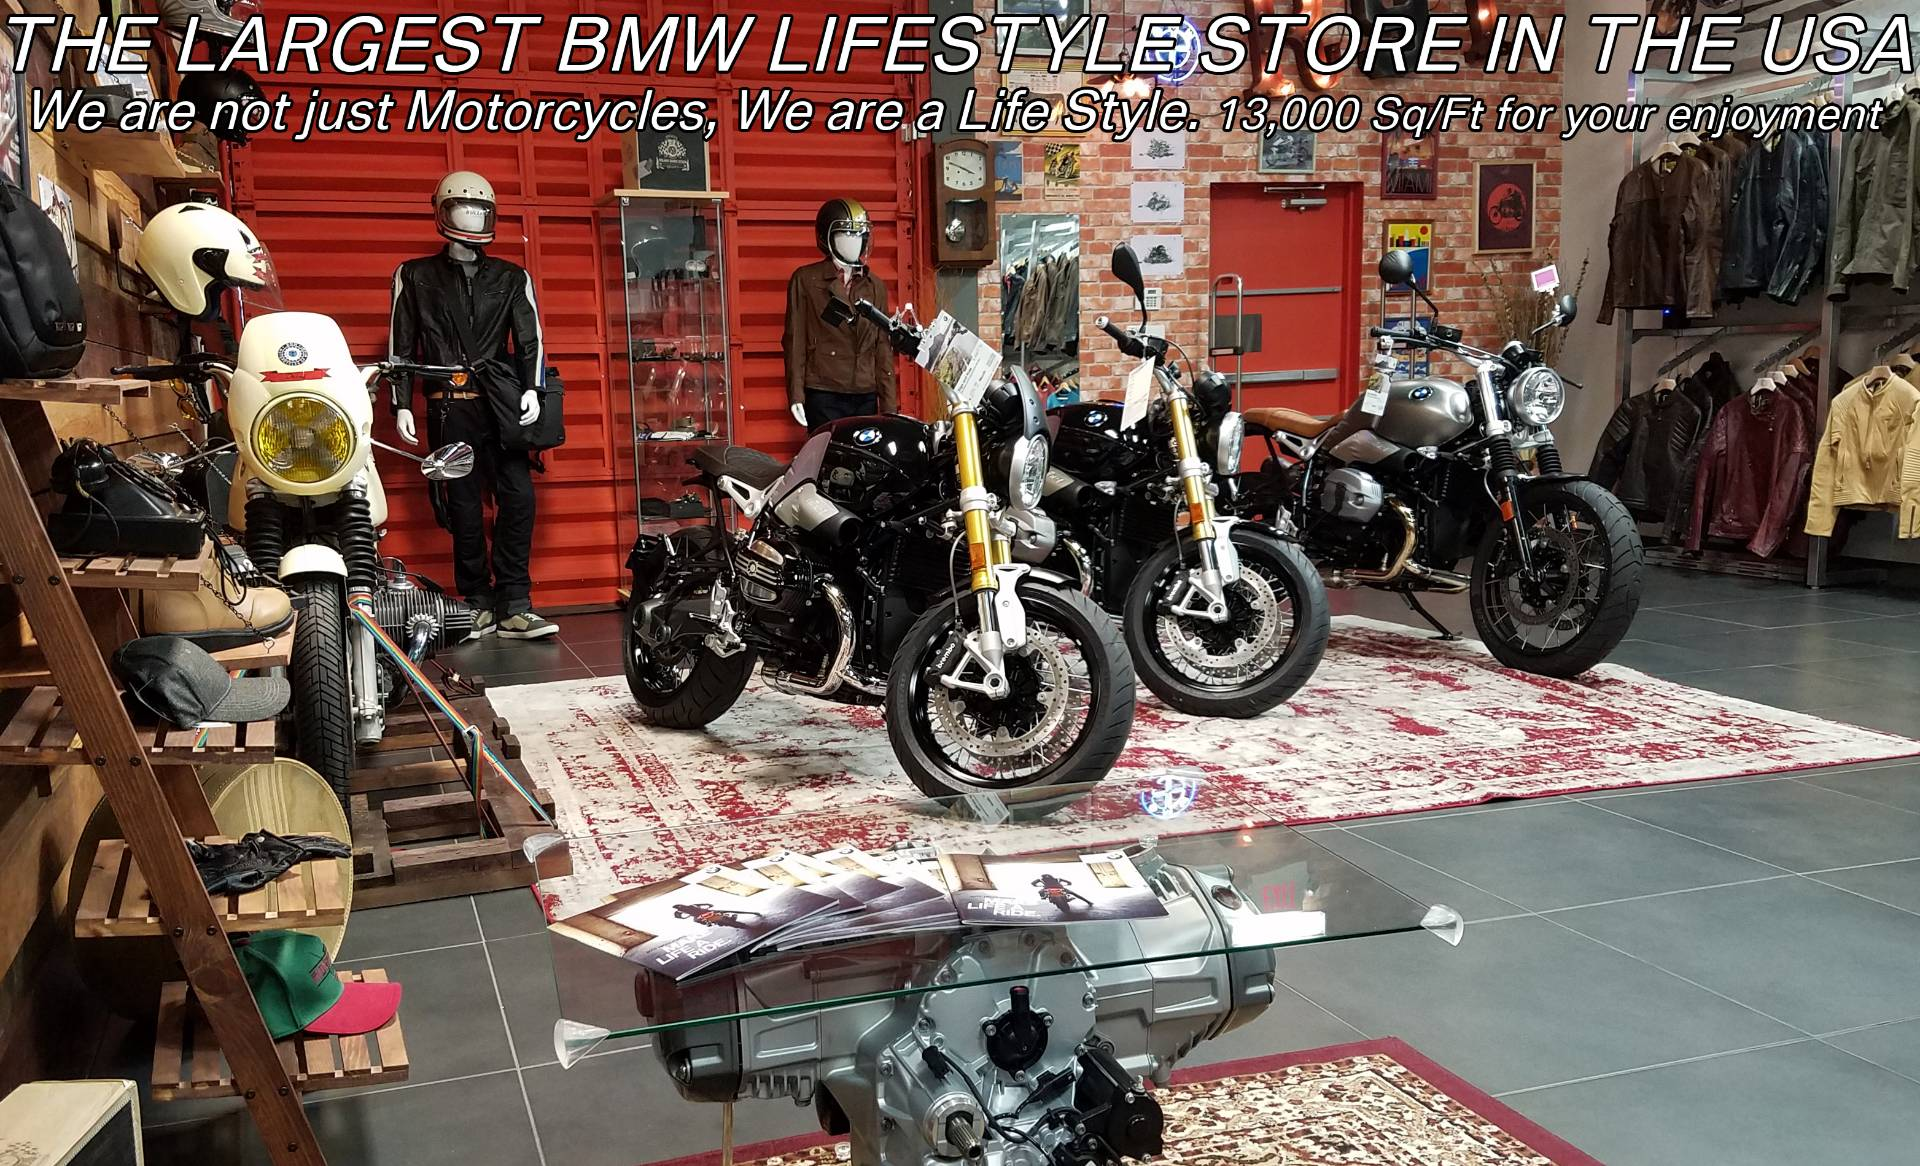 Used 2016 BMW R NineT for sale, BMW for sale, BMW Motorcycle Café Racer, new BMW Caffe, Cafe Racer, BMW. BMW Motorcycles of Miami, Motorcycles of Miami, Motorcycles Miami, New Motorcycles, Used Motorcycles, pre-owned. #BMWMotorcyclesOfMiami #MotorcyclesOfMiami. - Photo 40